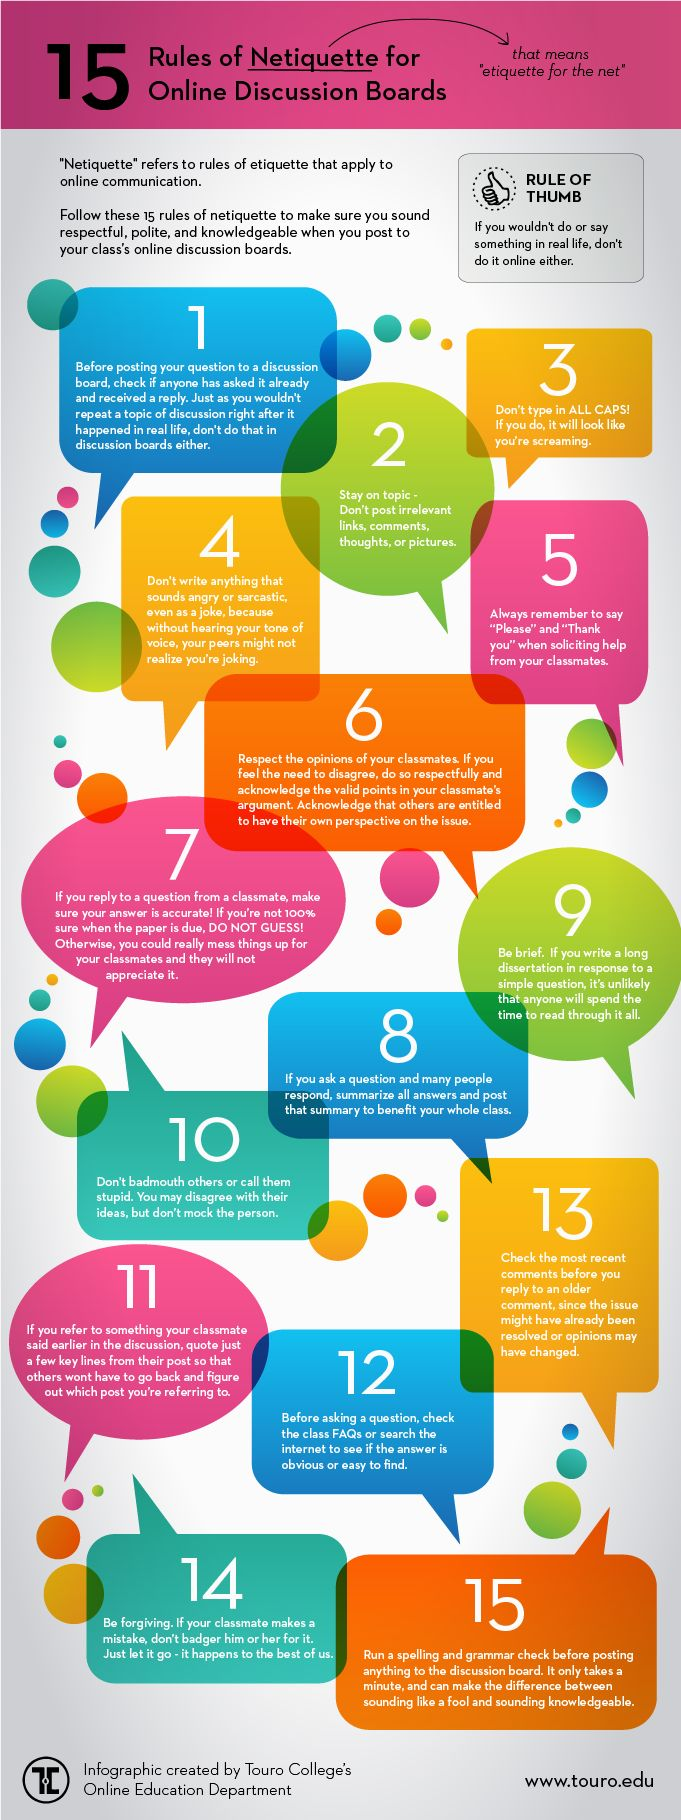 E learning poster designs - 15 Rules Of Netiquette For Online Discussion Boards Onlinelearning Learning Elearning